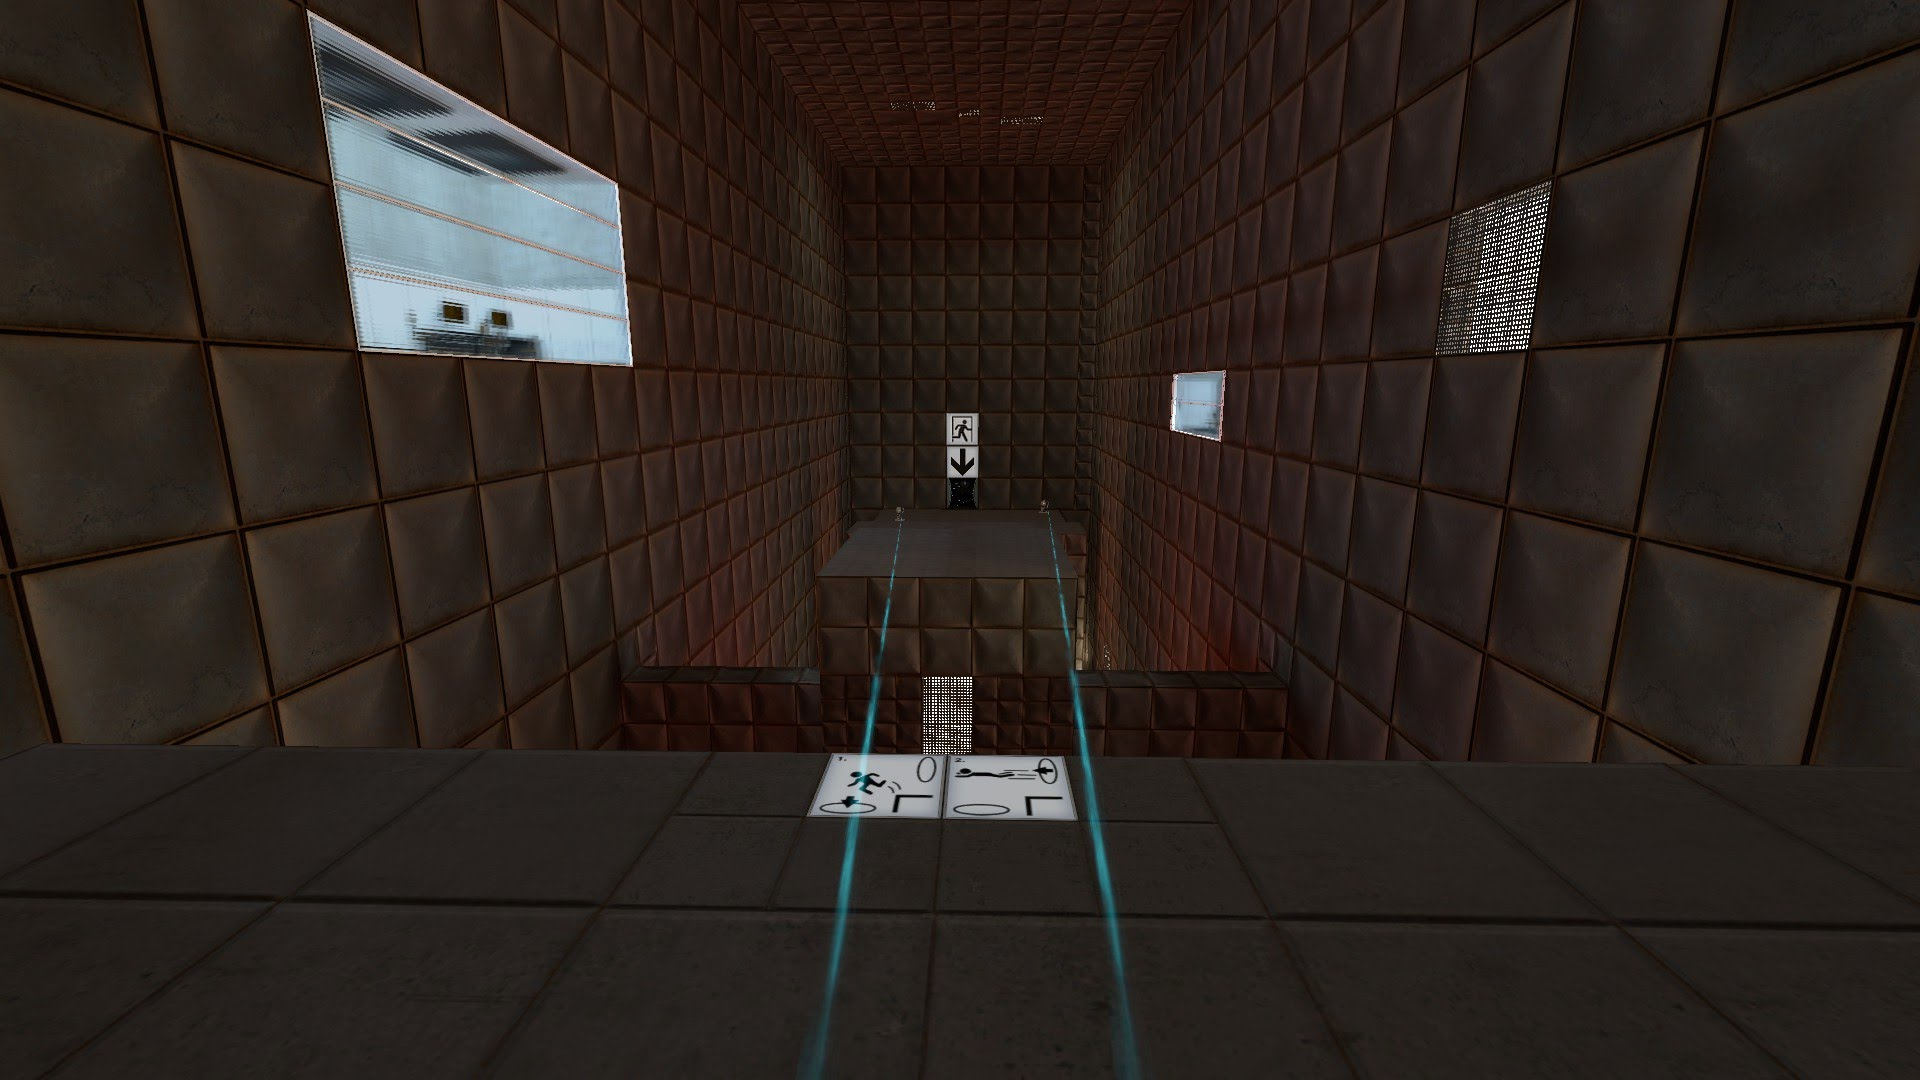 Missile launchers target the player in the third room.